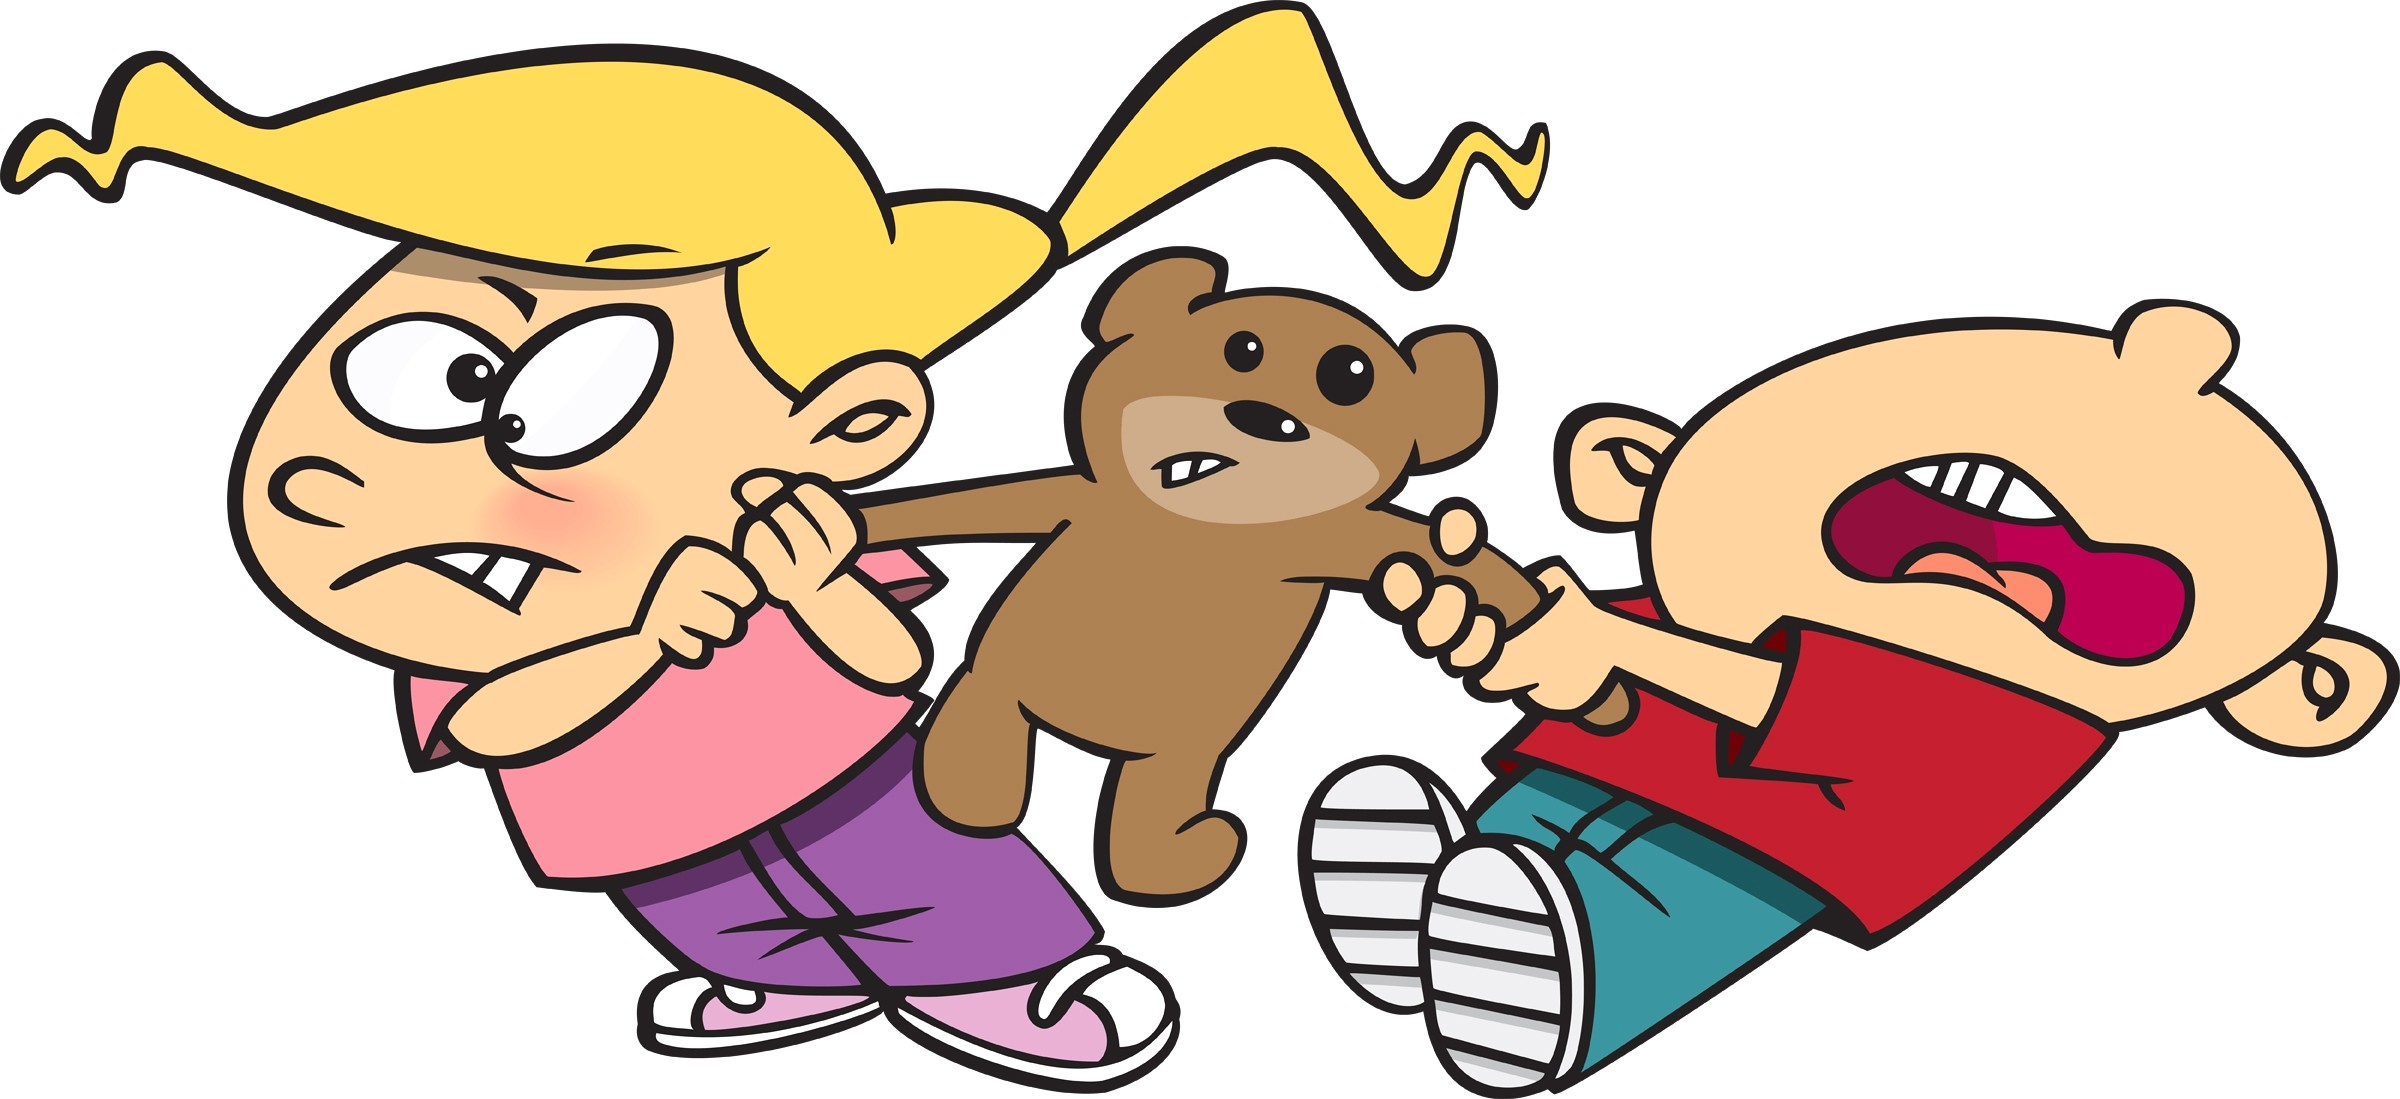 Kids fighting clipart 7 » Clipart Station.